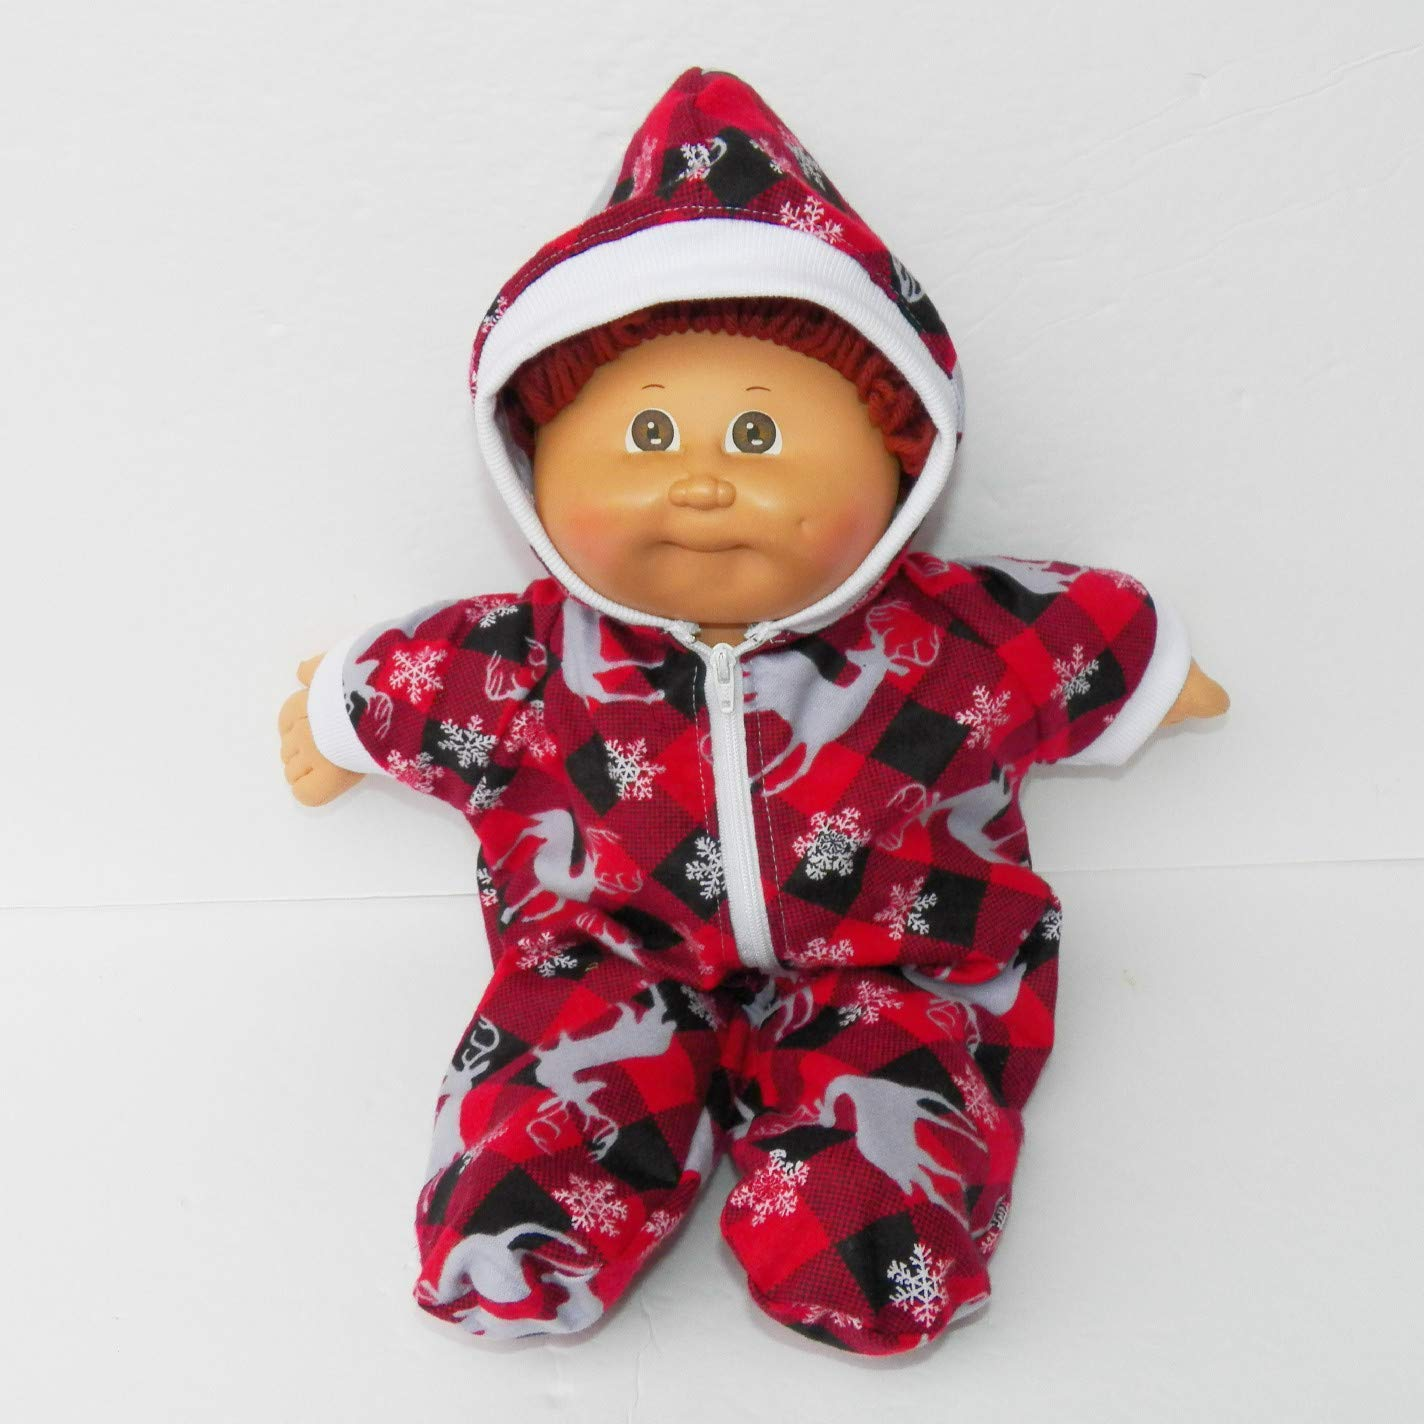 Cabbage Patch Doll Clothes Christmas Boy Red Buffalo Check Deer Hooded Pajamas 16 Inch